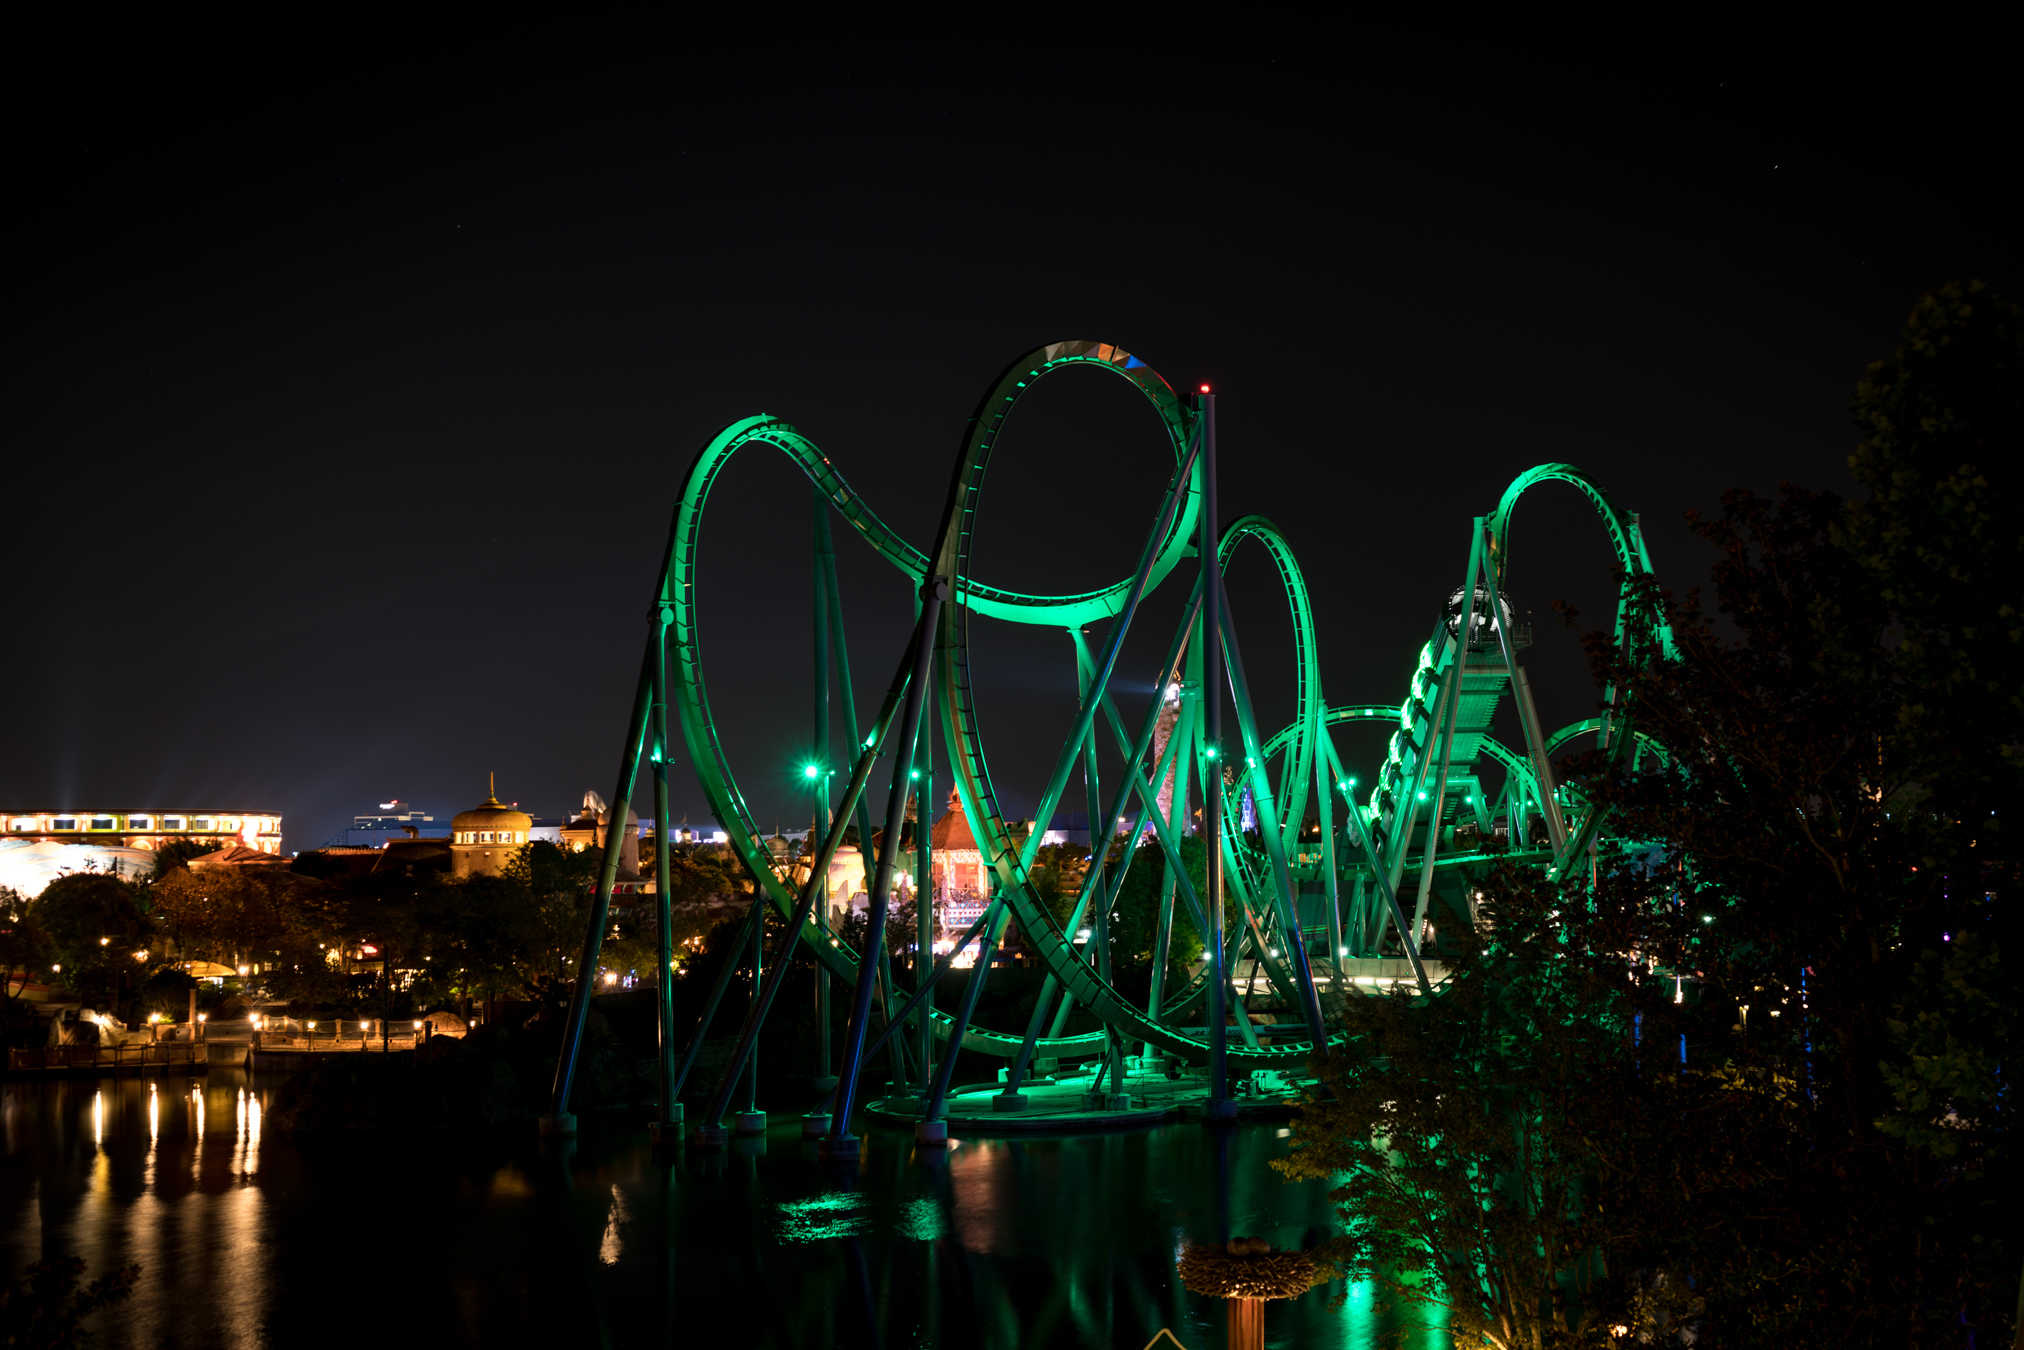 Incredible Hulk Coaster begins to roar back to life